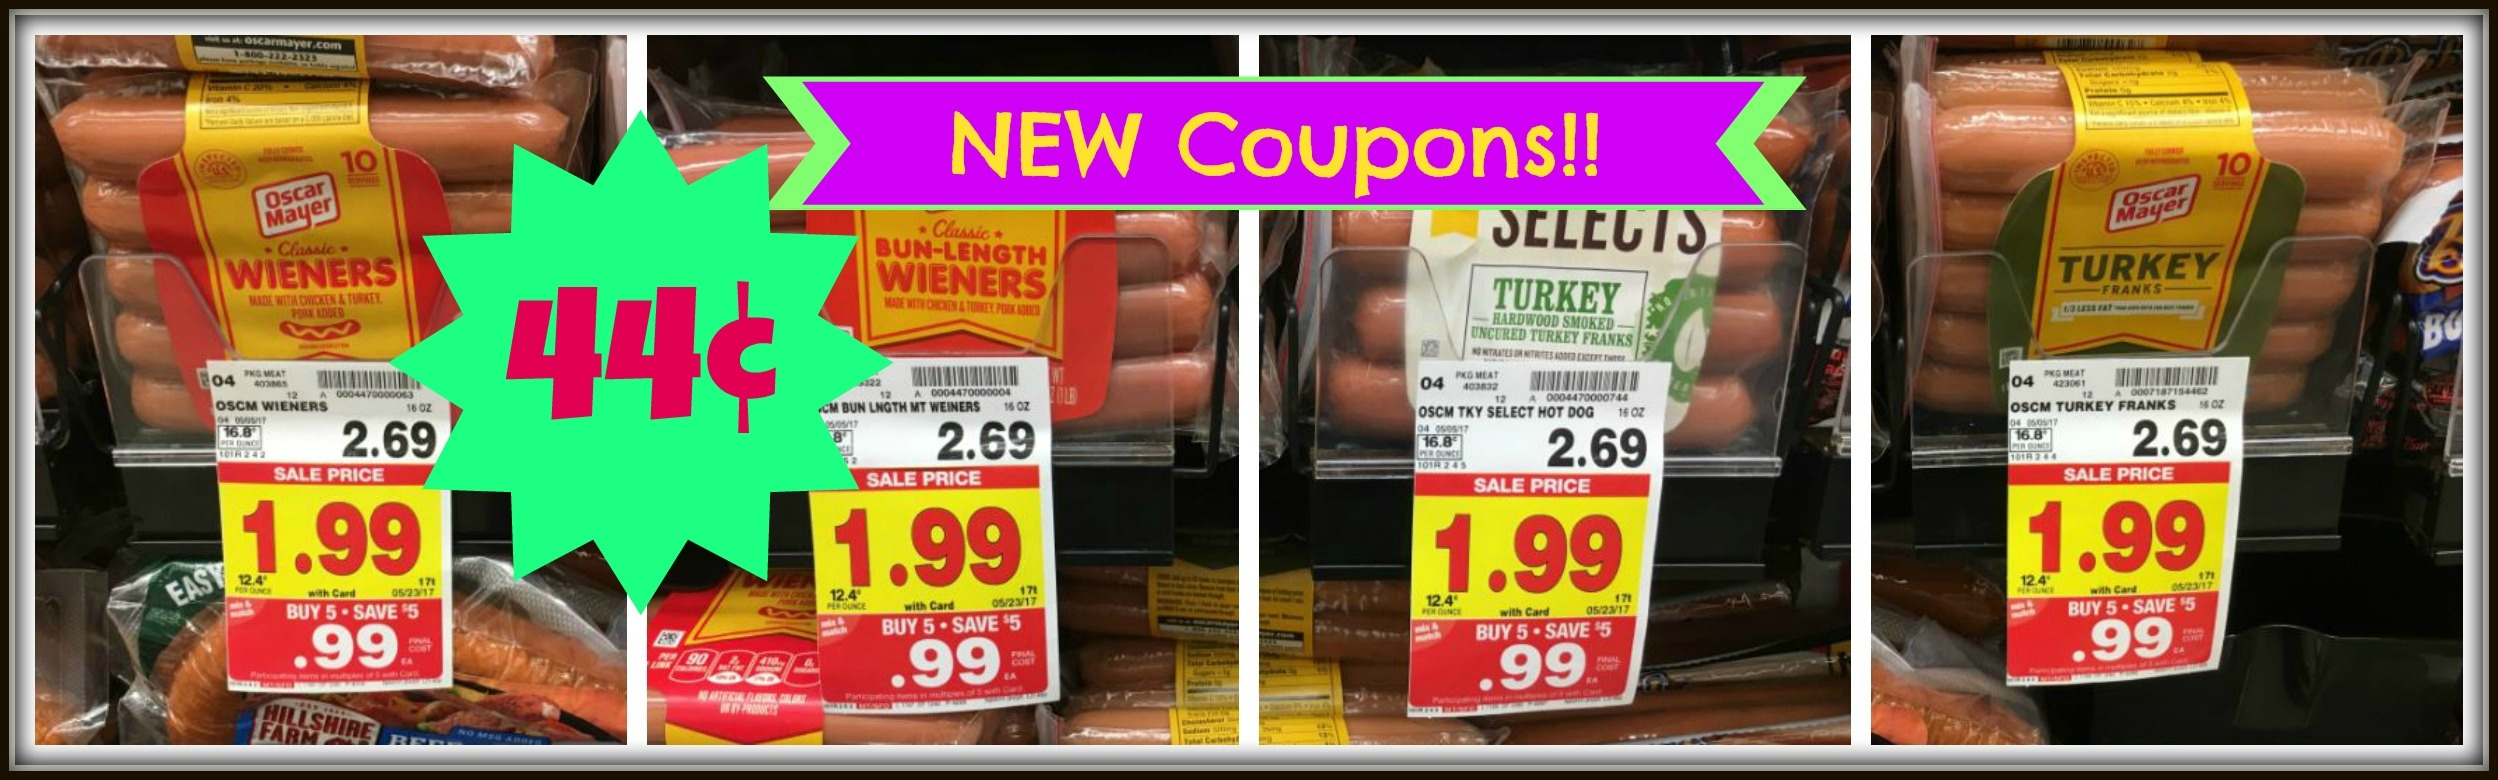 New Oscar Mayer Coupons| Hot Dogs Only $0.44 At Kroger!! | Kroger Krazy - Free Printable Oscar Mayer Coupons